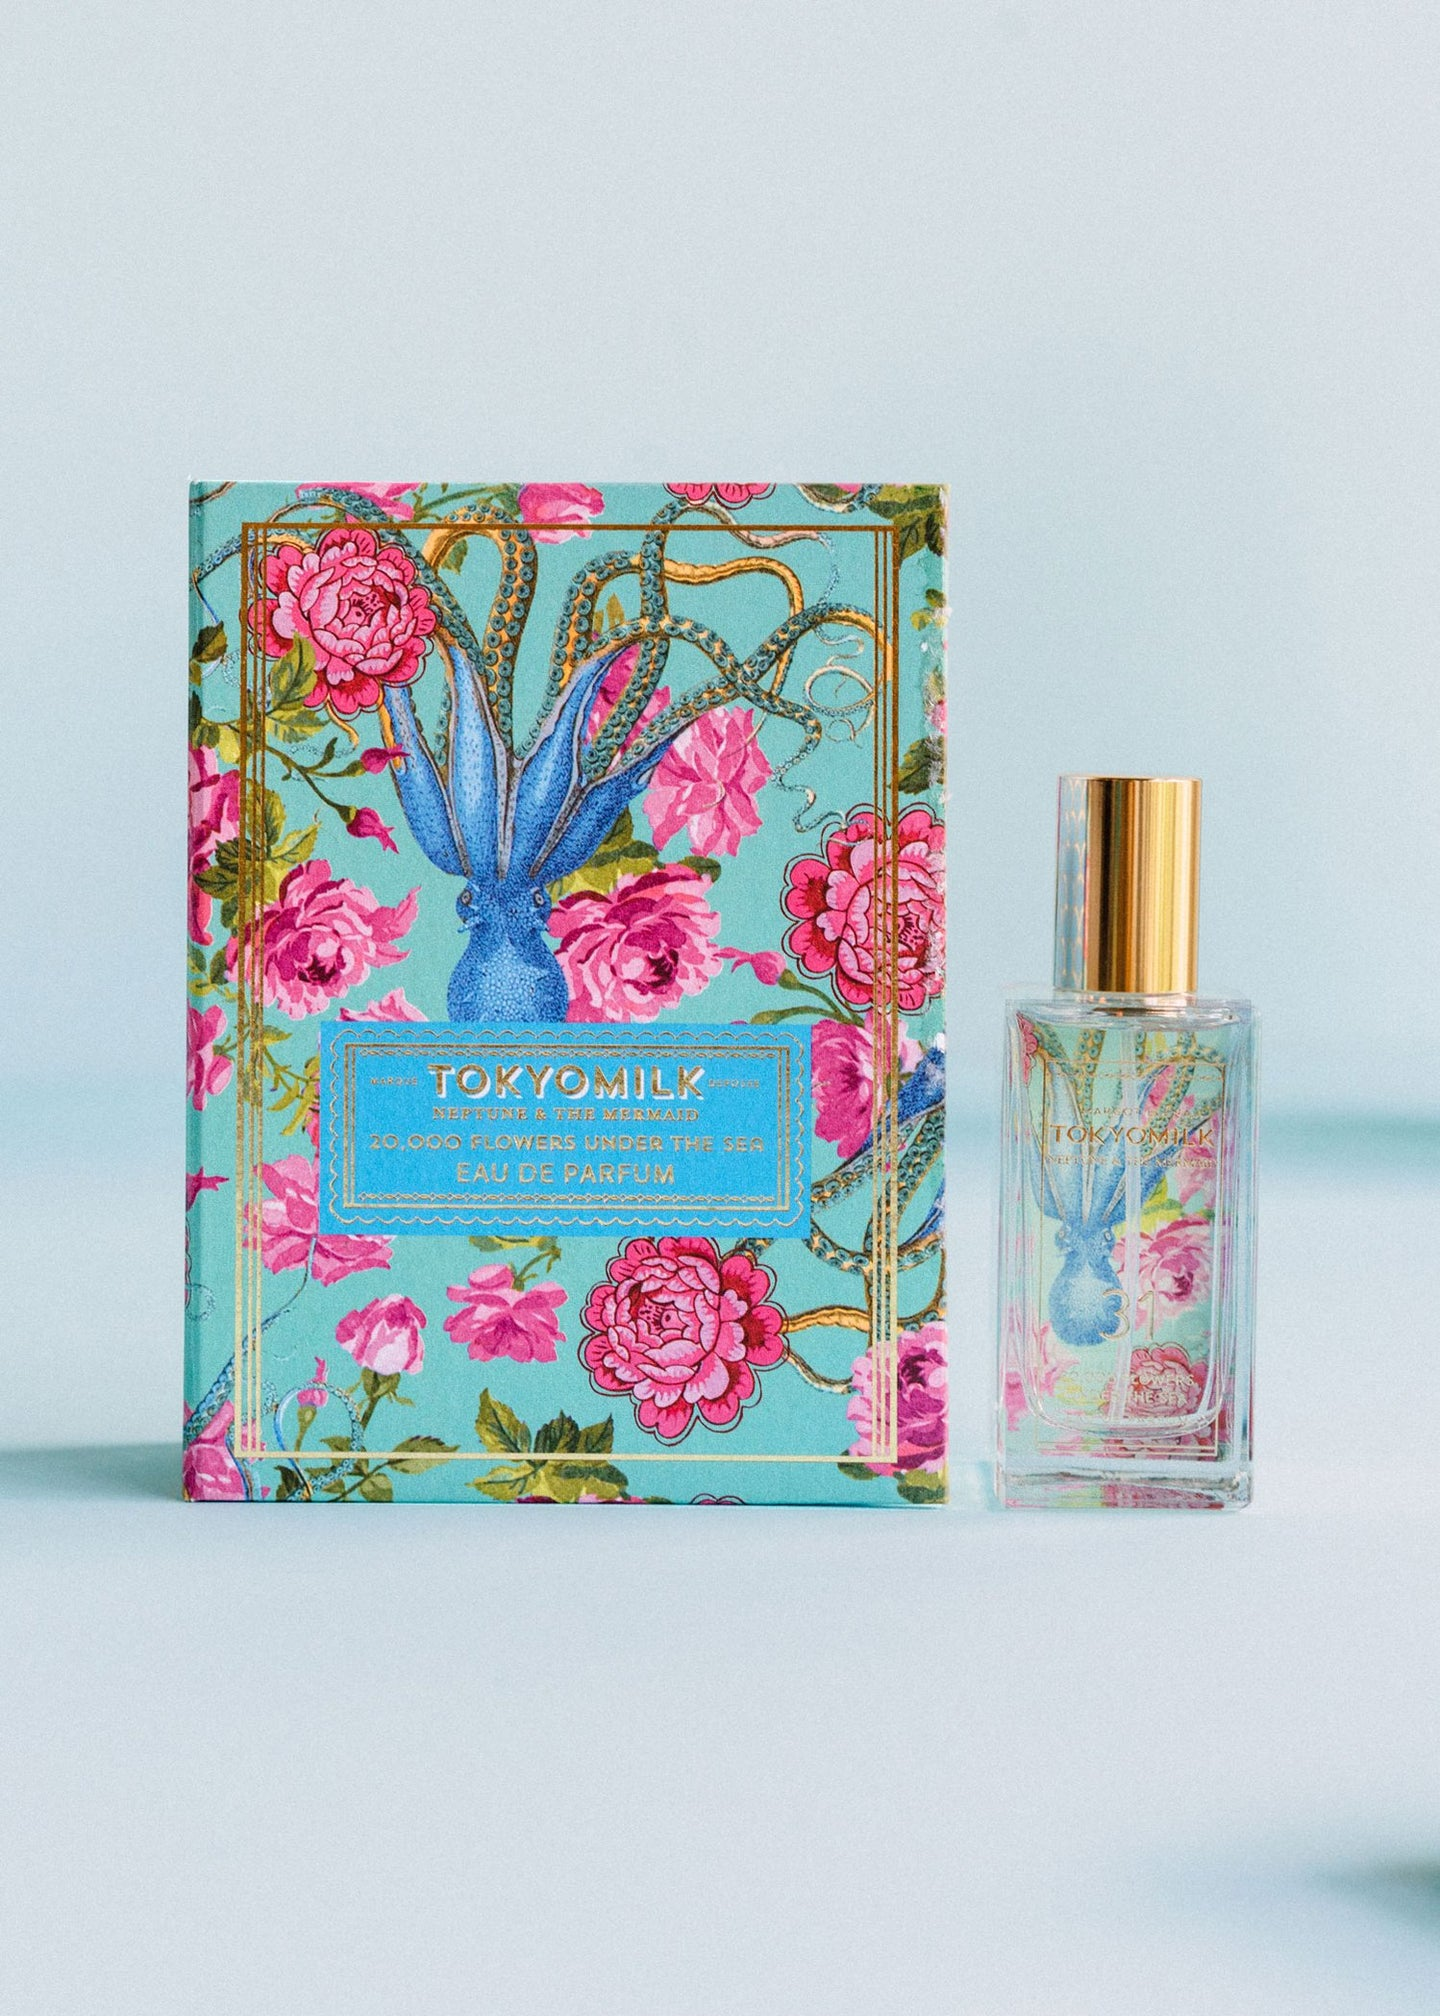 20,000 Flowers Under the Sea Storybook Eau de  Parfum